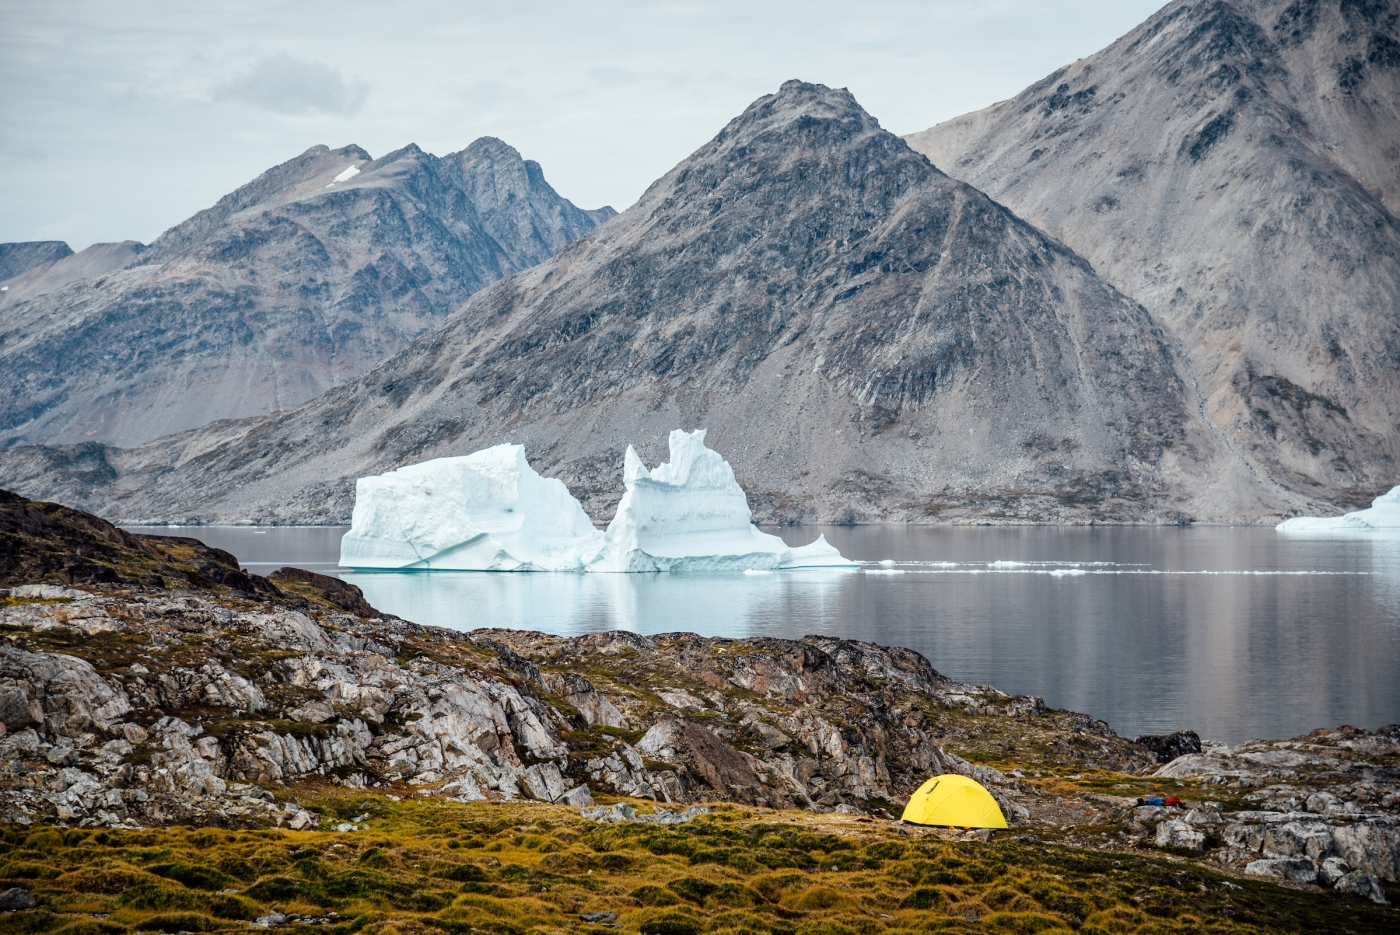 A tent site with an iceberg in the background, Between Kulusuk & Kuummiut.Photo by Chris Brin Lee Jr. - Visit Greenland